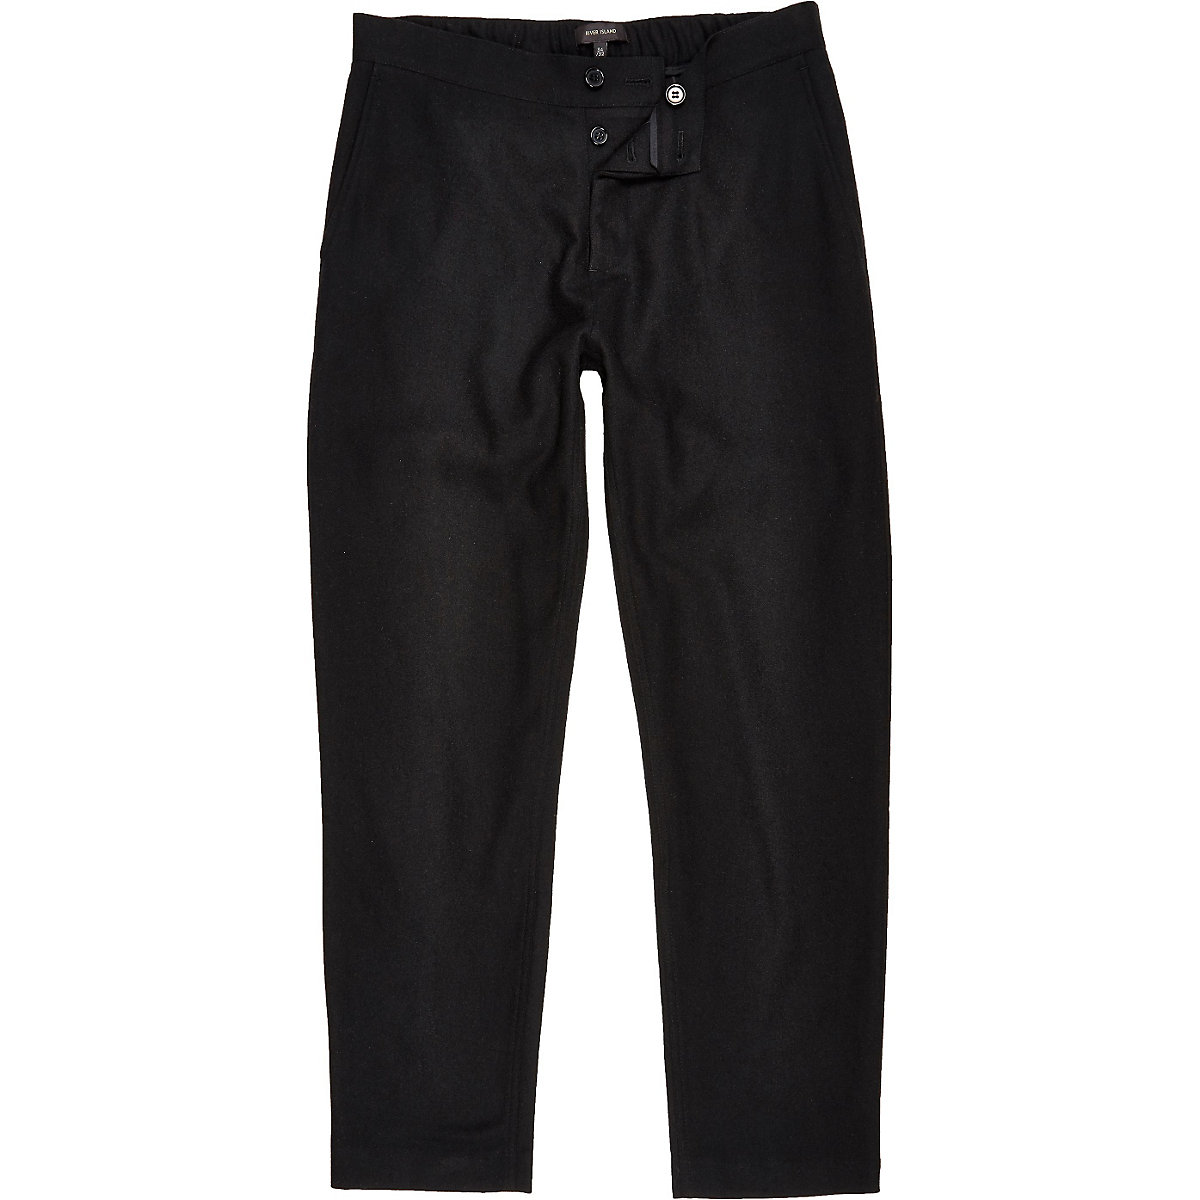 Black wool-blend jogger pants